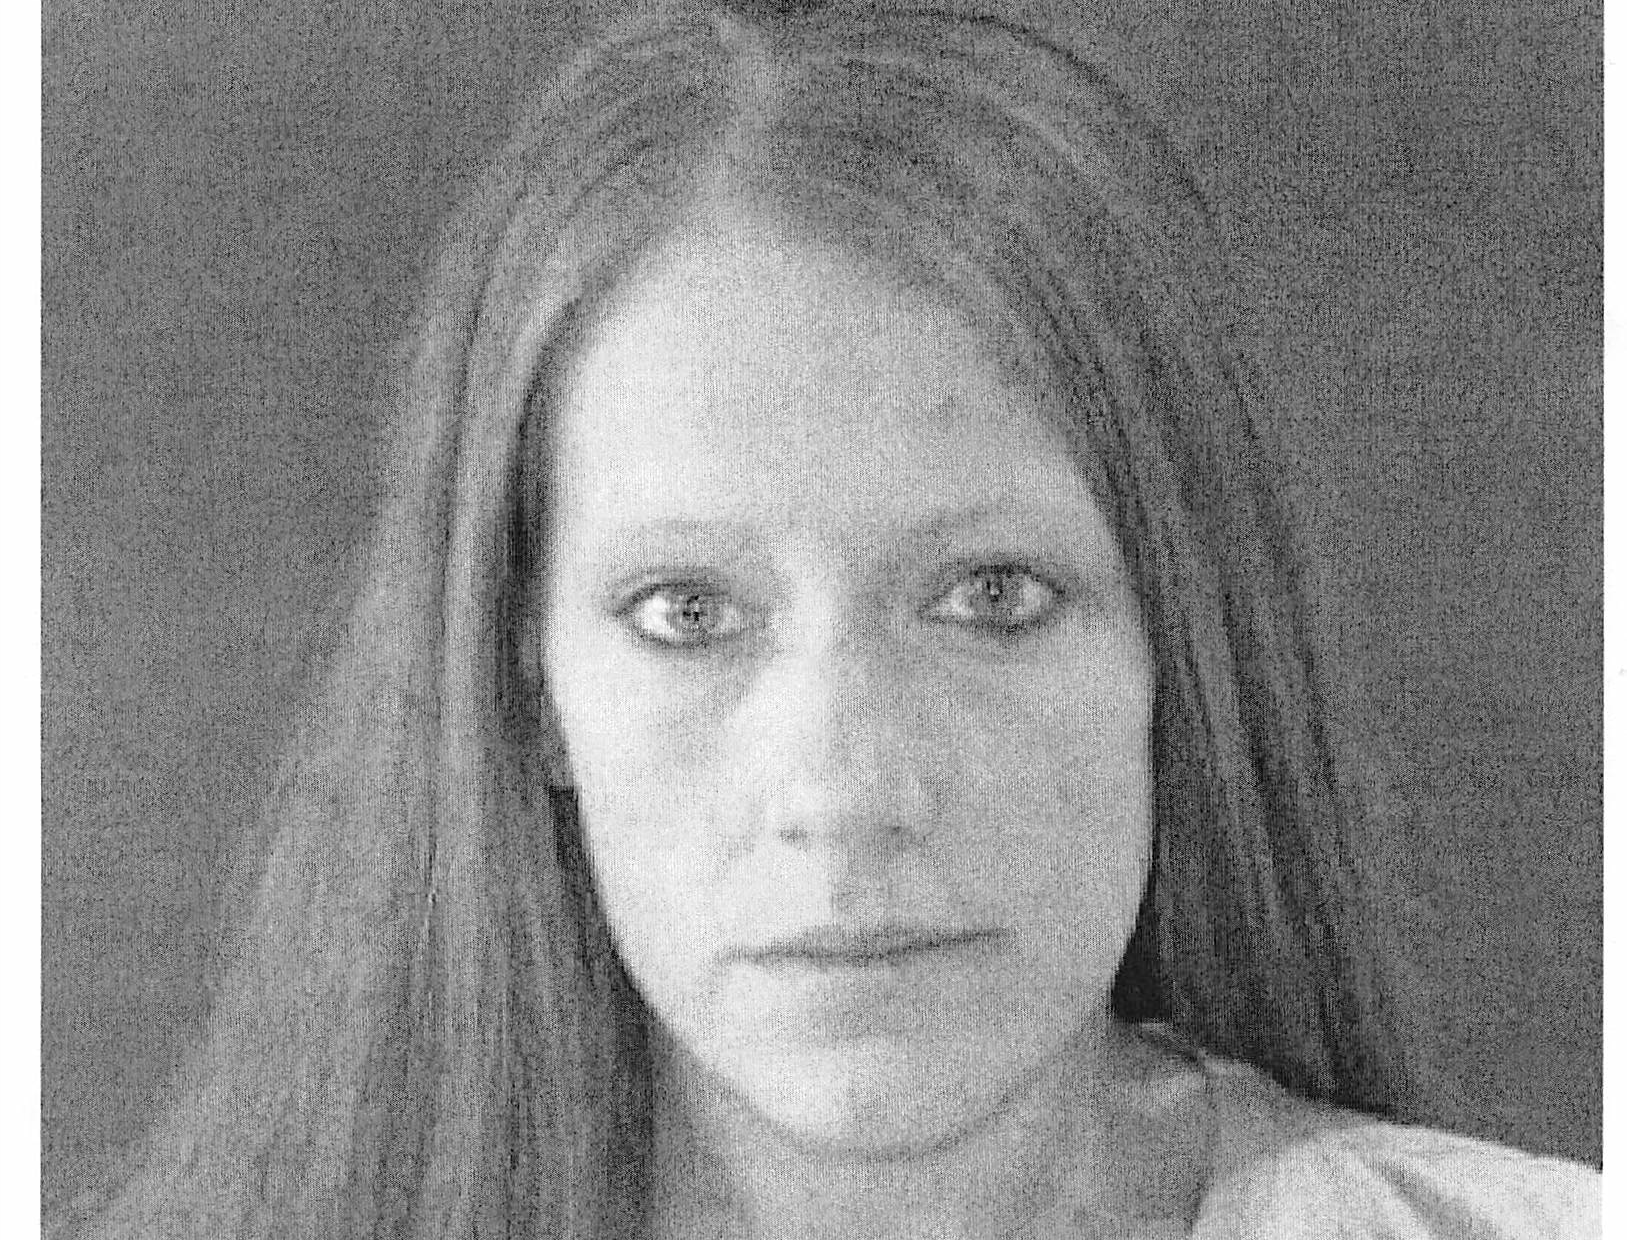 Jenien Lynn Epling, born on 7/21/1978, 5-foot-4, wanted for failure to appear child support. All tips should be reported to the Carroll County Sheriff's Office at 410-386-5900.